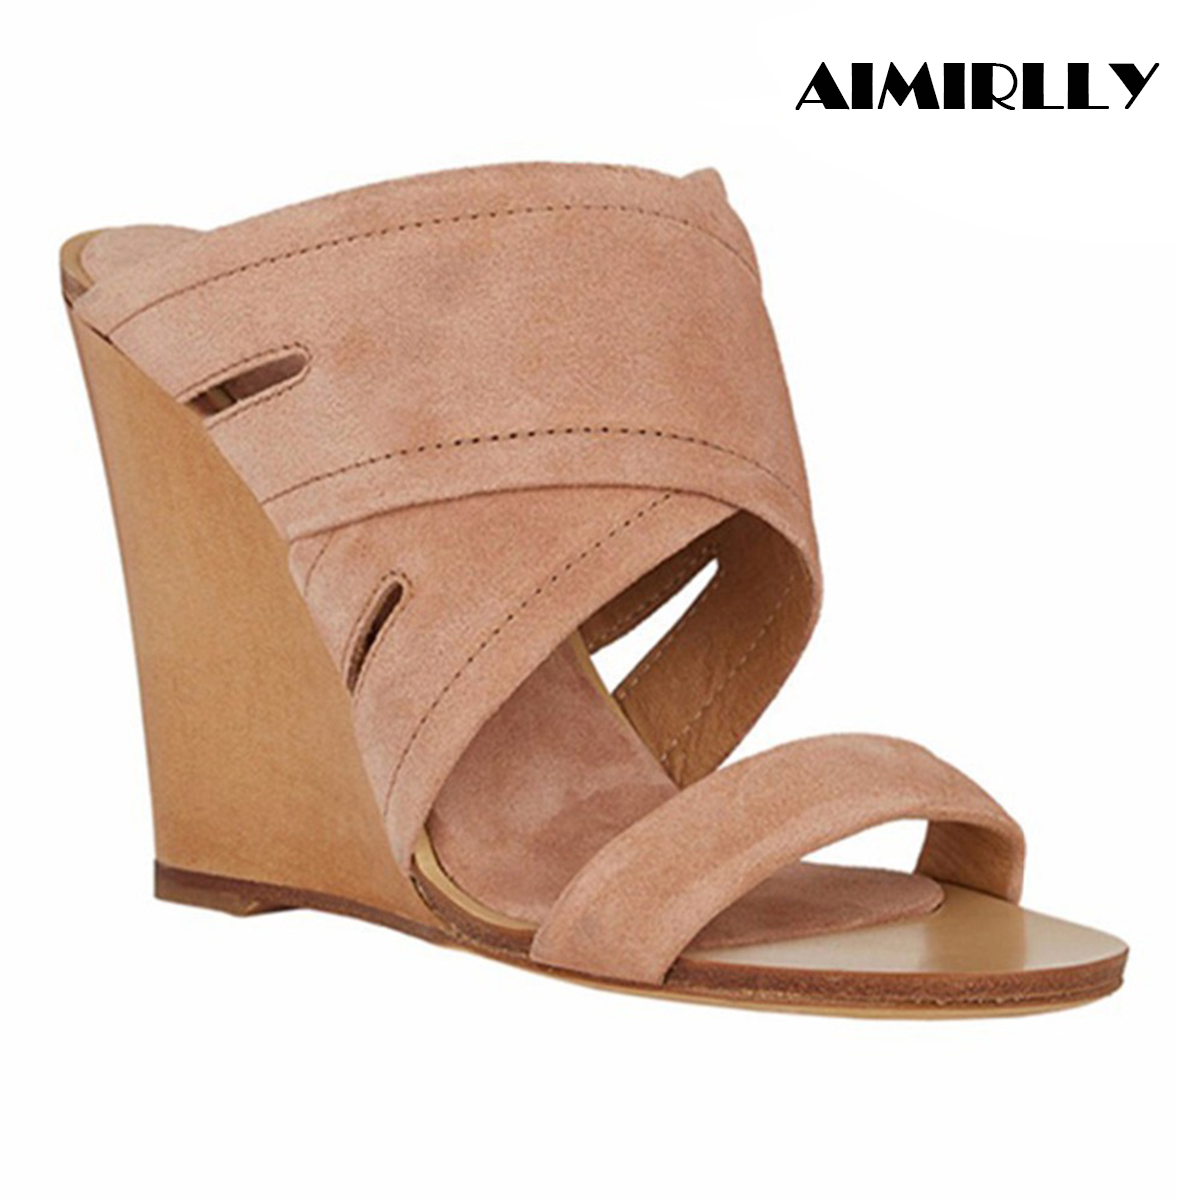 Summer Shoes Slippers Sandals Wedge-Heel Comfortable Us-Size Wholesale Women on Mules